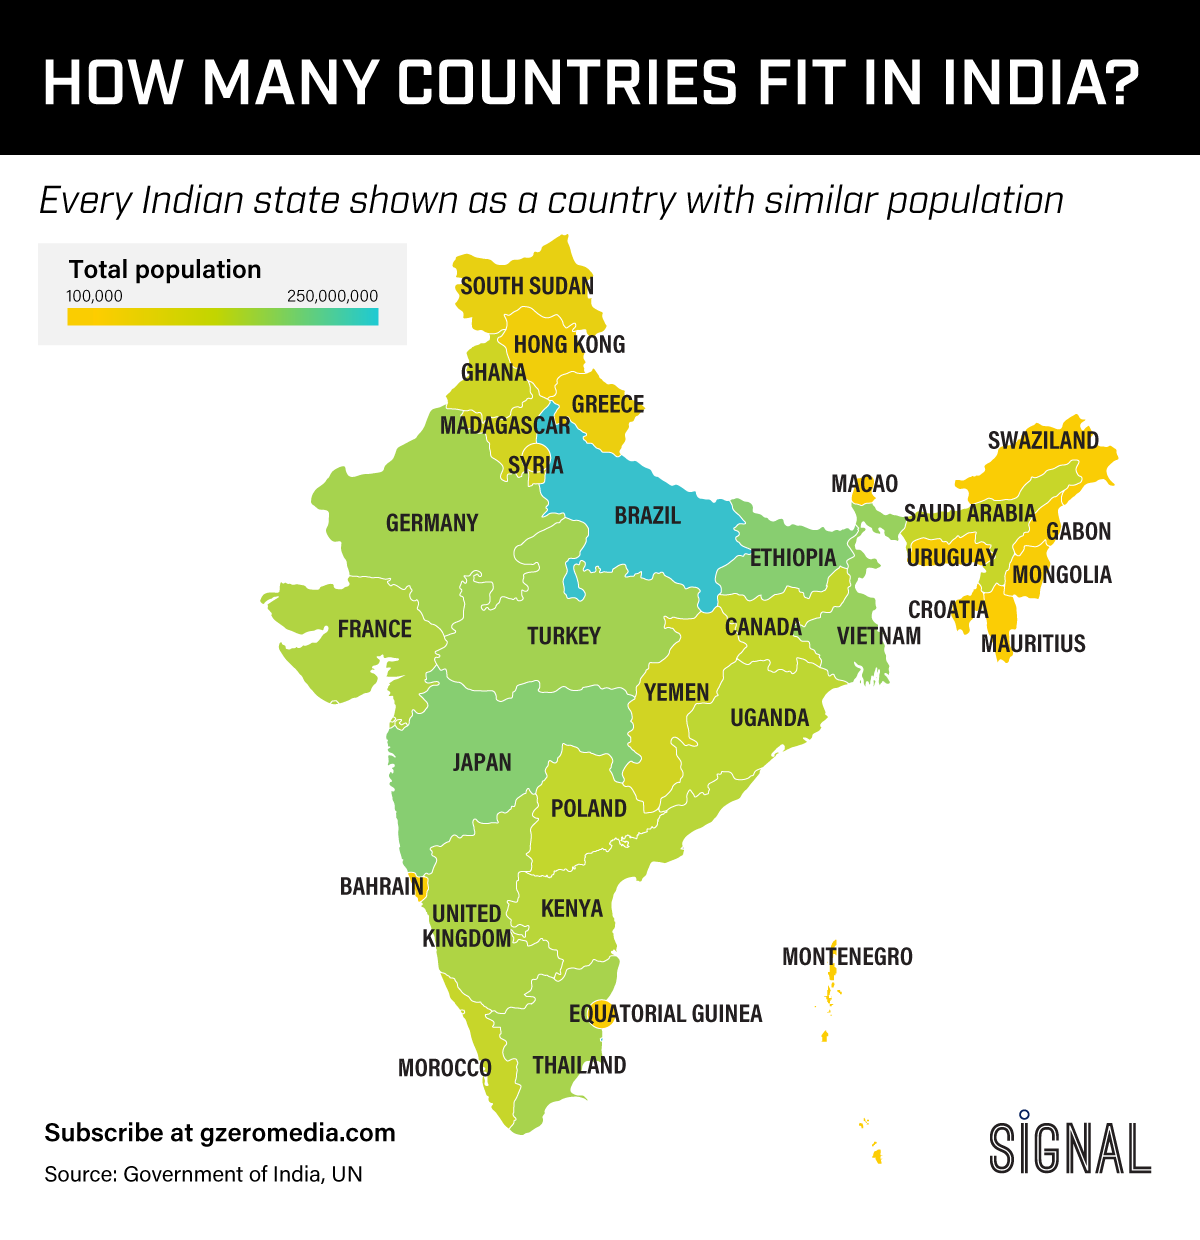 Graphic Truth: How Many Countries Fit in India? - GZERO Media on map of kalahari desert, map of senegal, map of thiland, map of nicaragua, map of cambodia, map of taiwan, map of sahara desert, map of bulgaria, map of north korea, map of ukraine, map of mali, map of usa, map of french polynesia, map of baffin island, map of south africa, map of antarctica, map of mexico, map of namib desert, map of new zealand, map of iran,